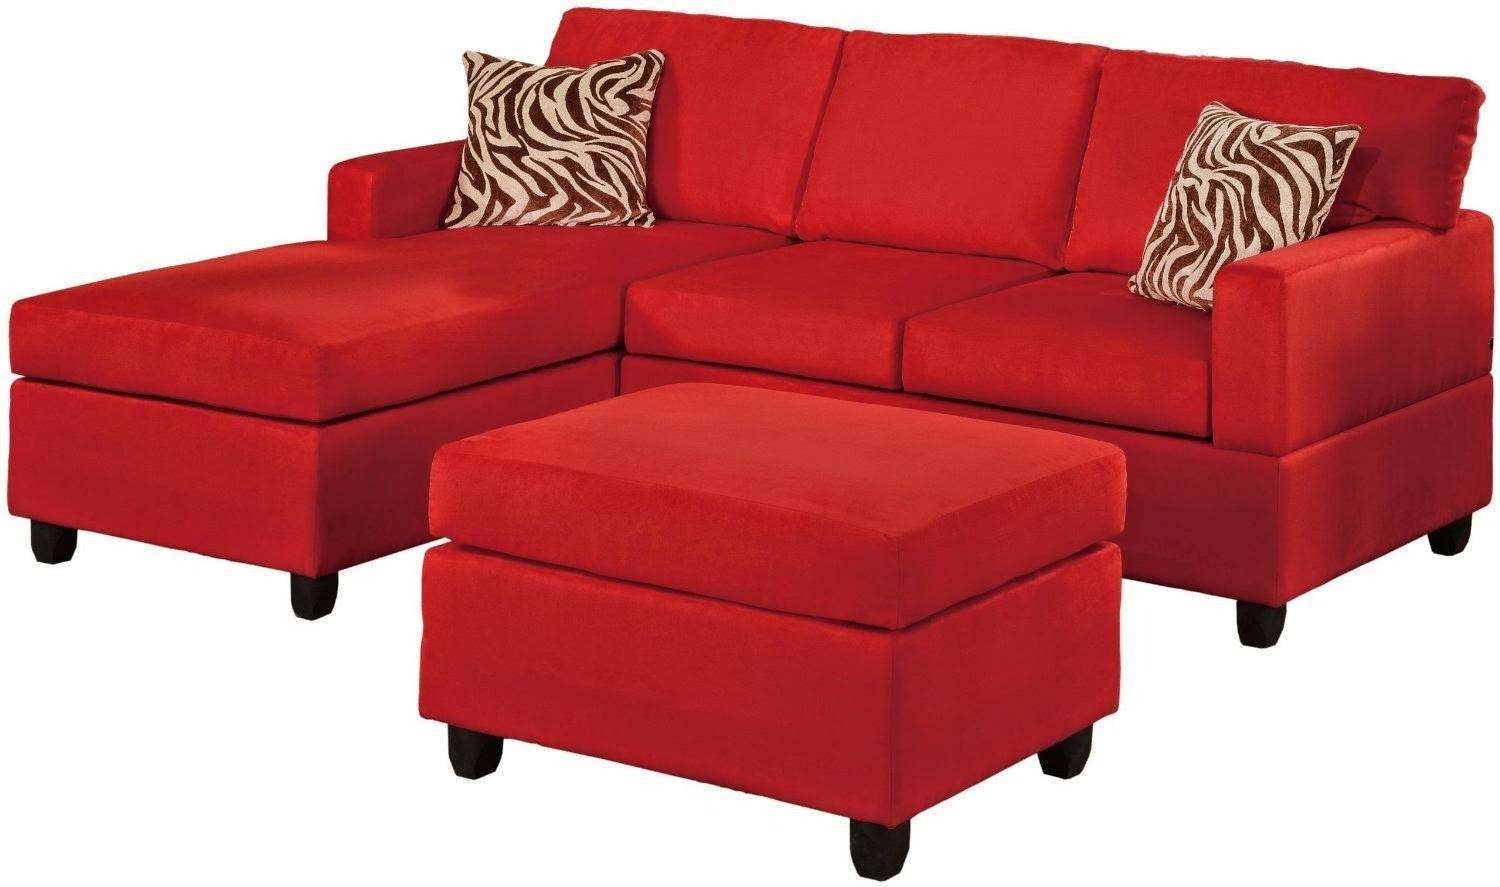 apt size sectional sofas modern for drawing room best 30 43 of apartment and sectionals